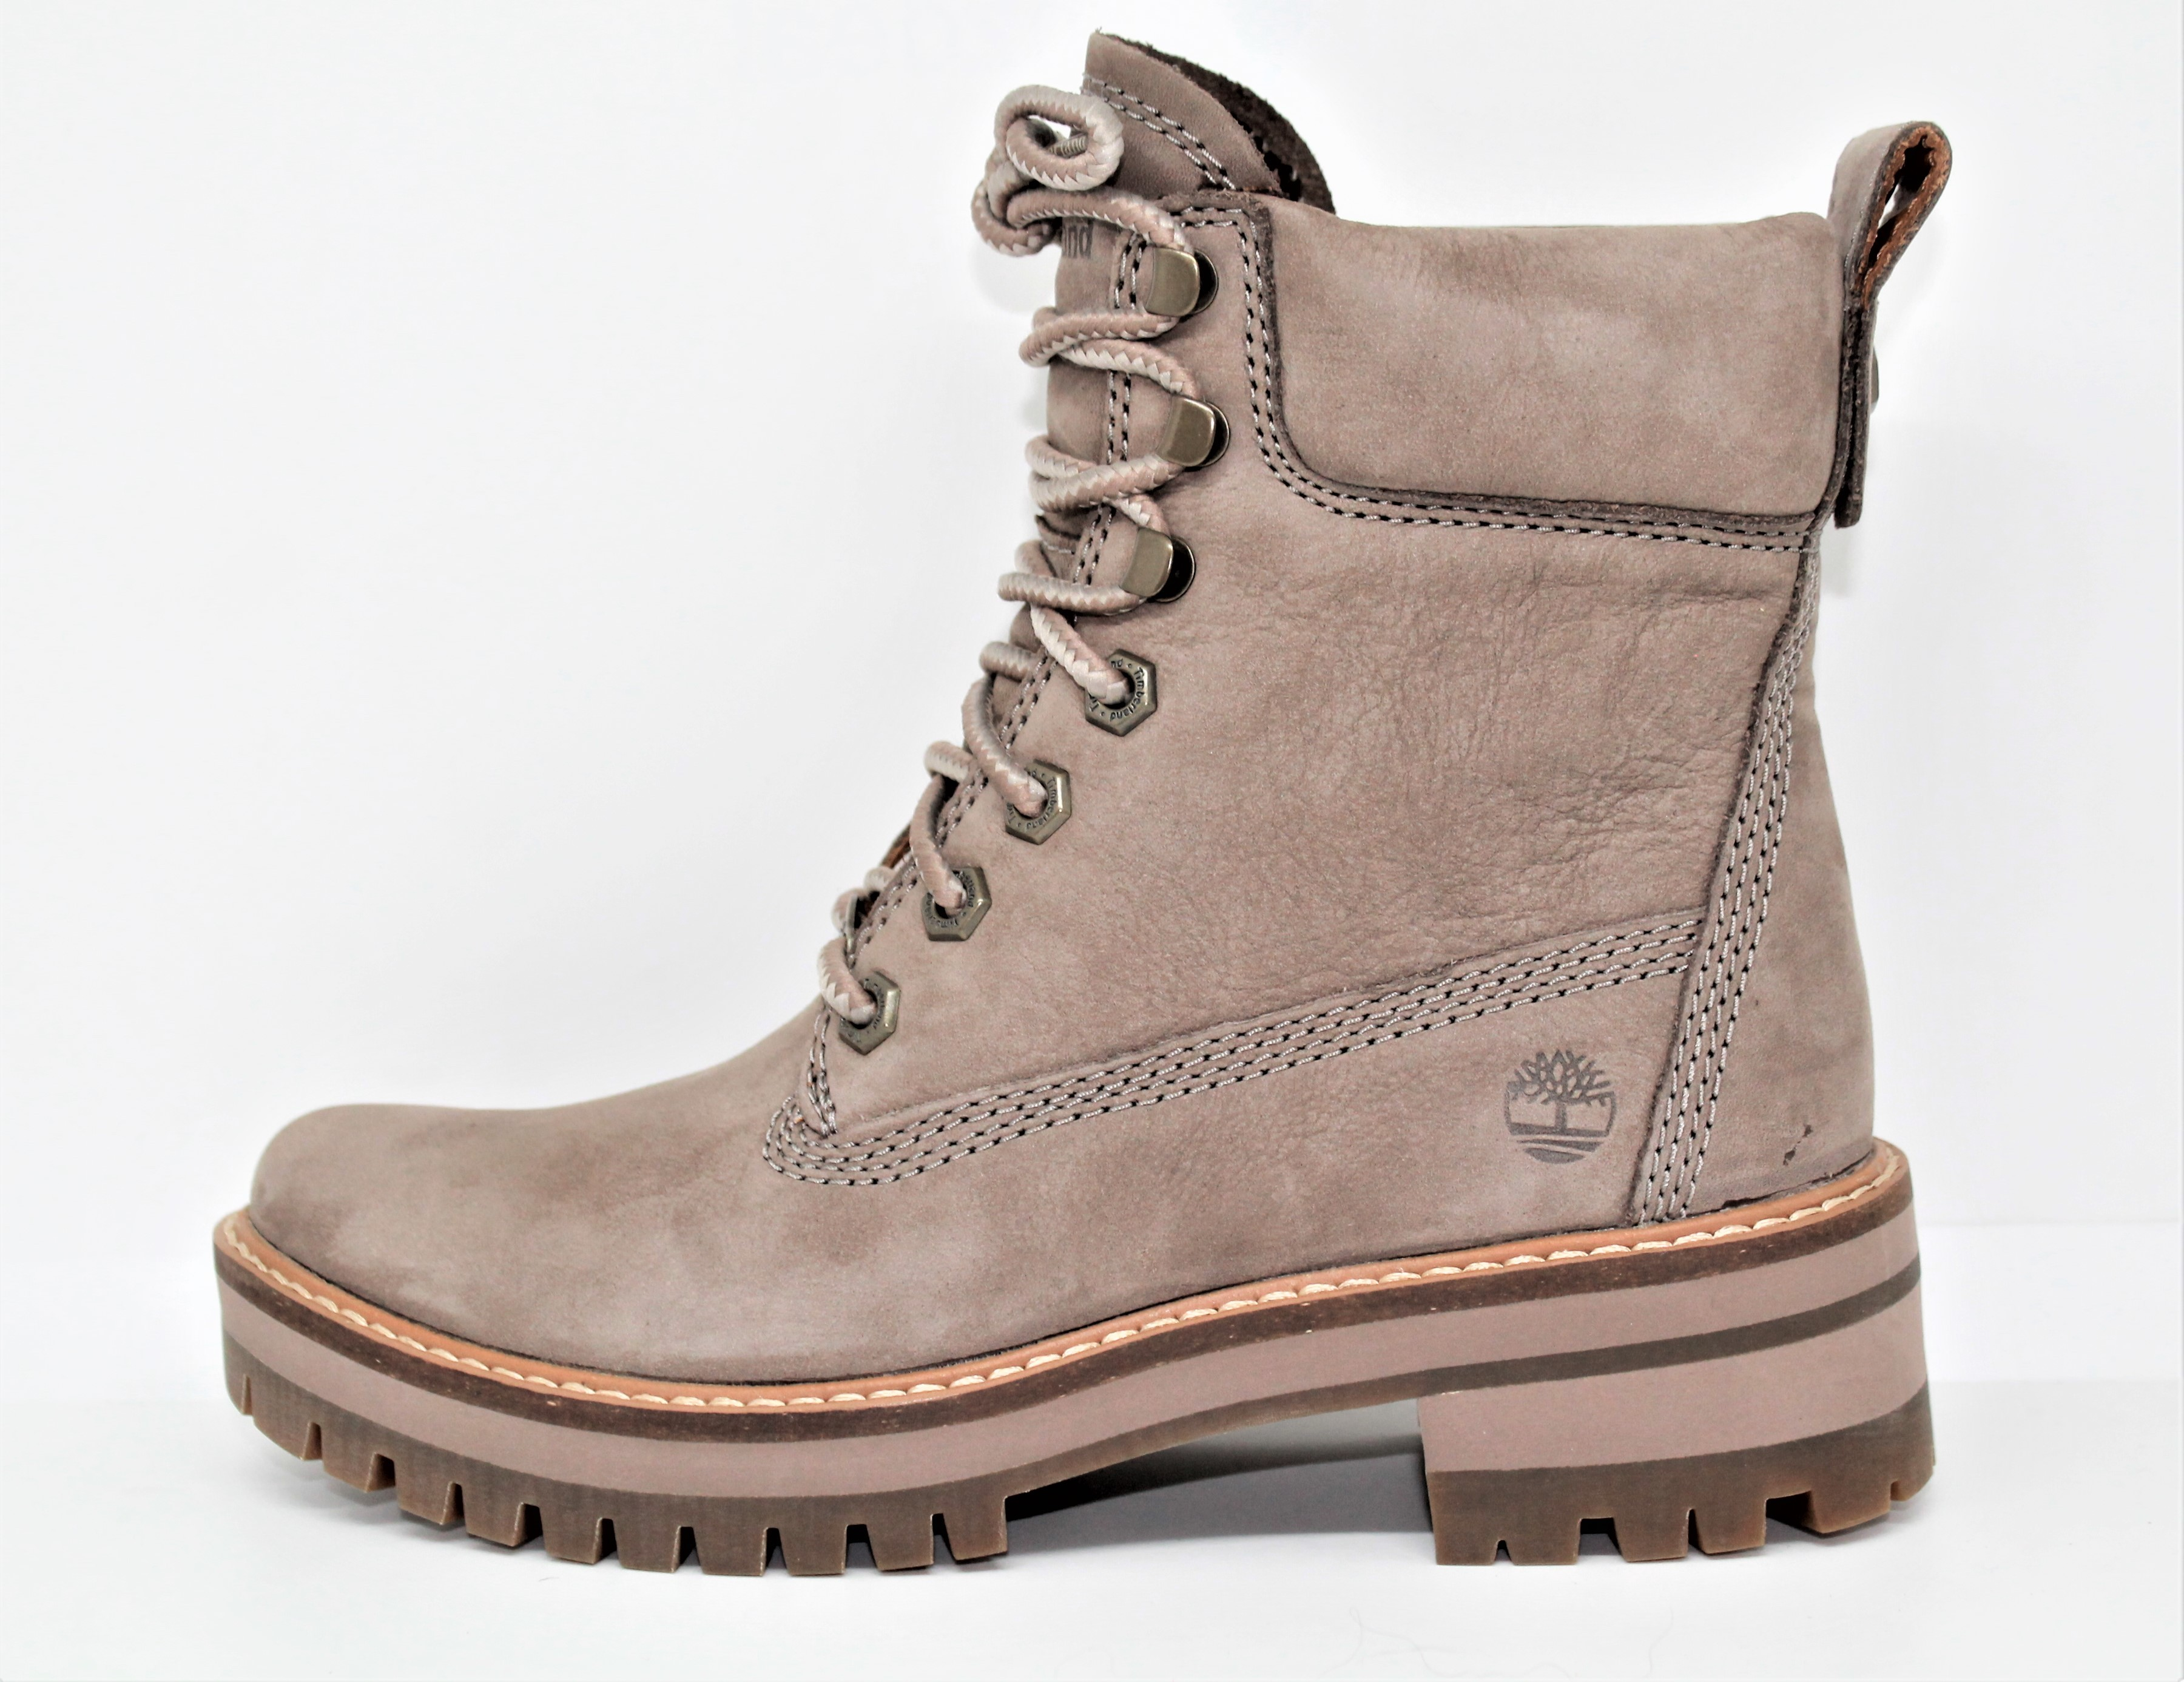 diagonal inteligencia idioma  timberland femme boot courmayeur valley yellow taupe gray - cardel  chaussures